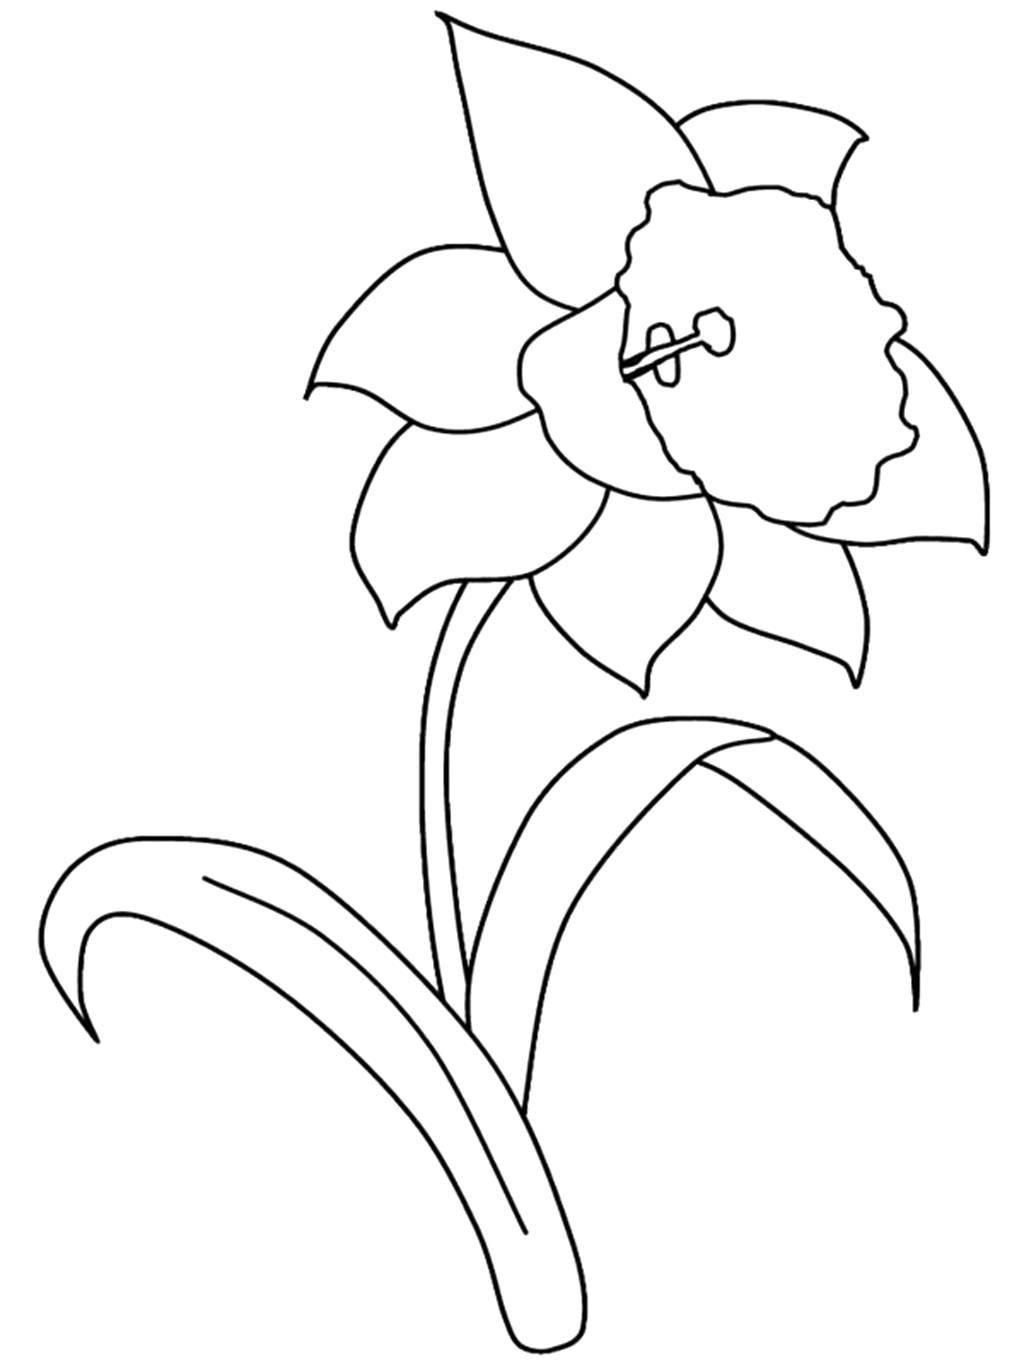 Daffodil Coloring Pages Veles Collection Of New Daffodil Flower Coloring Pages Collection Printable